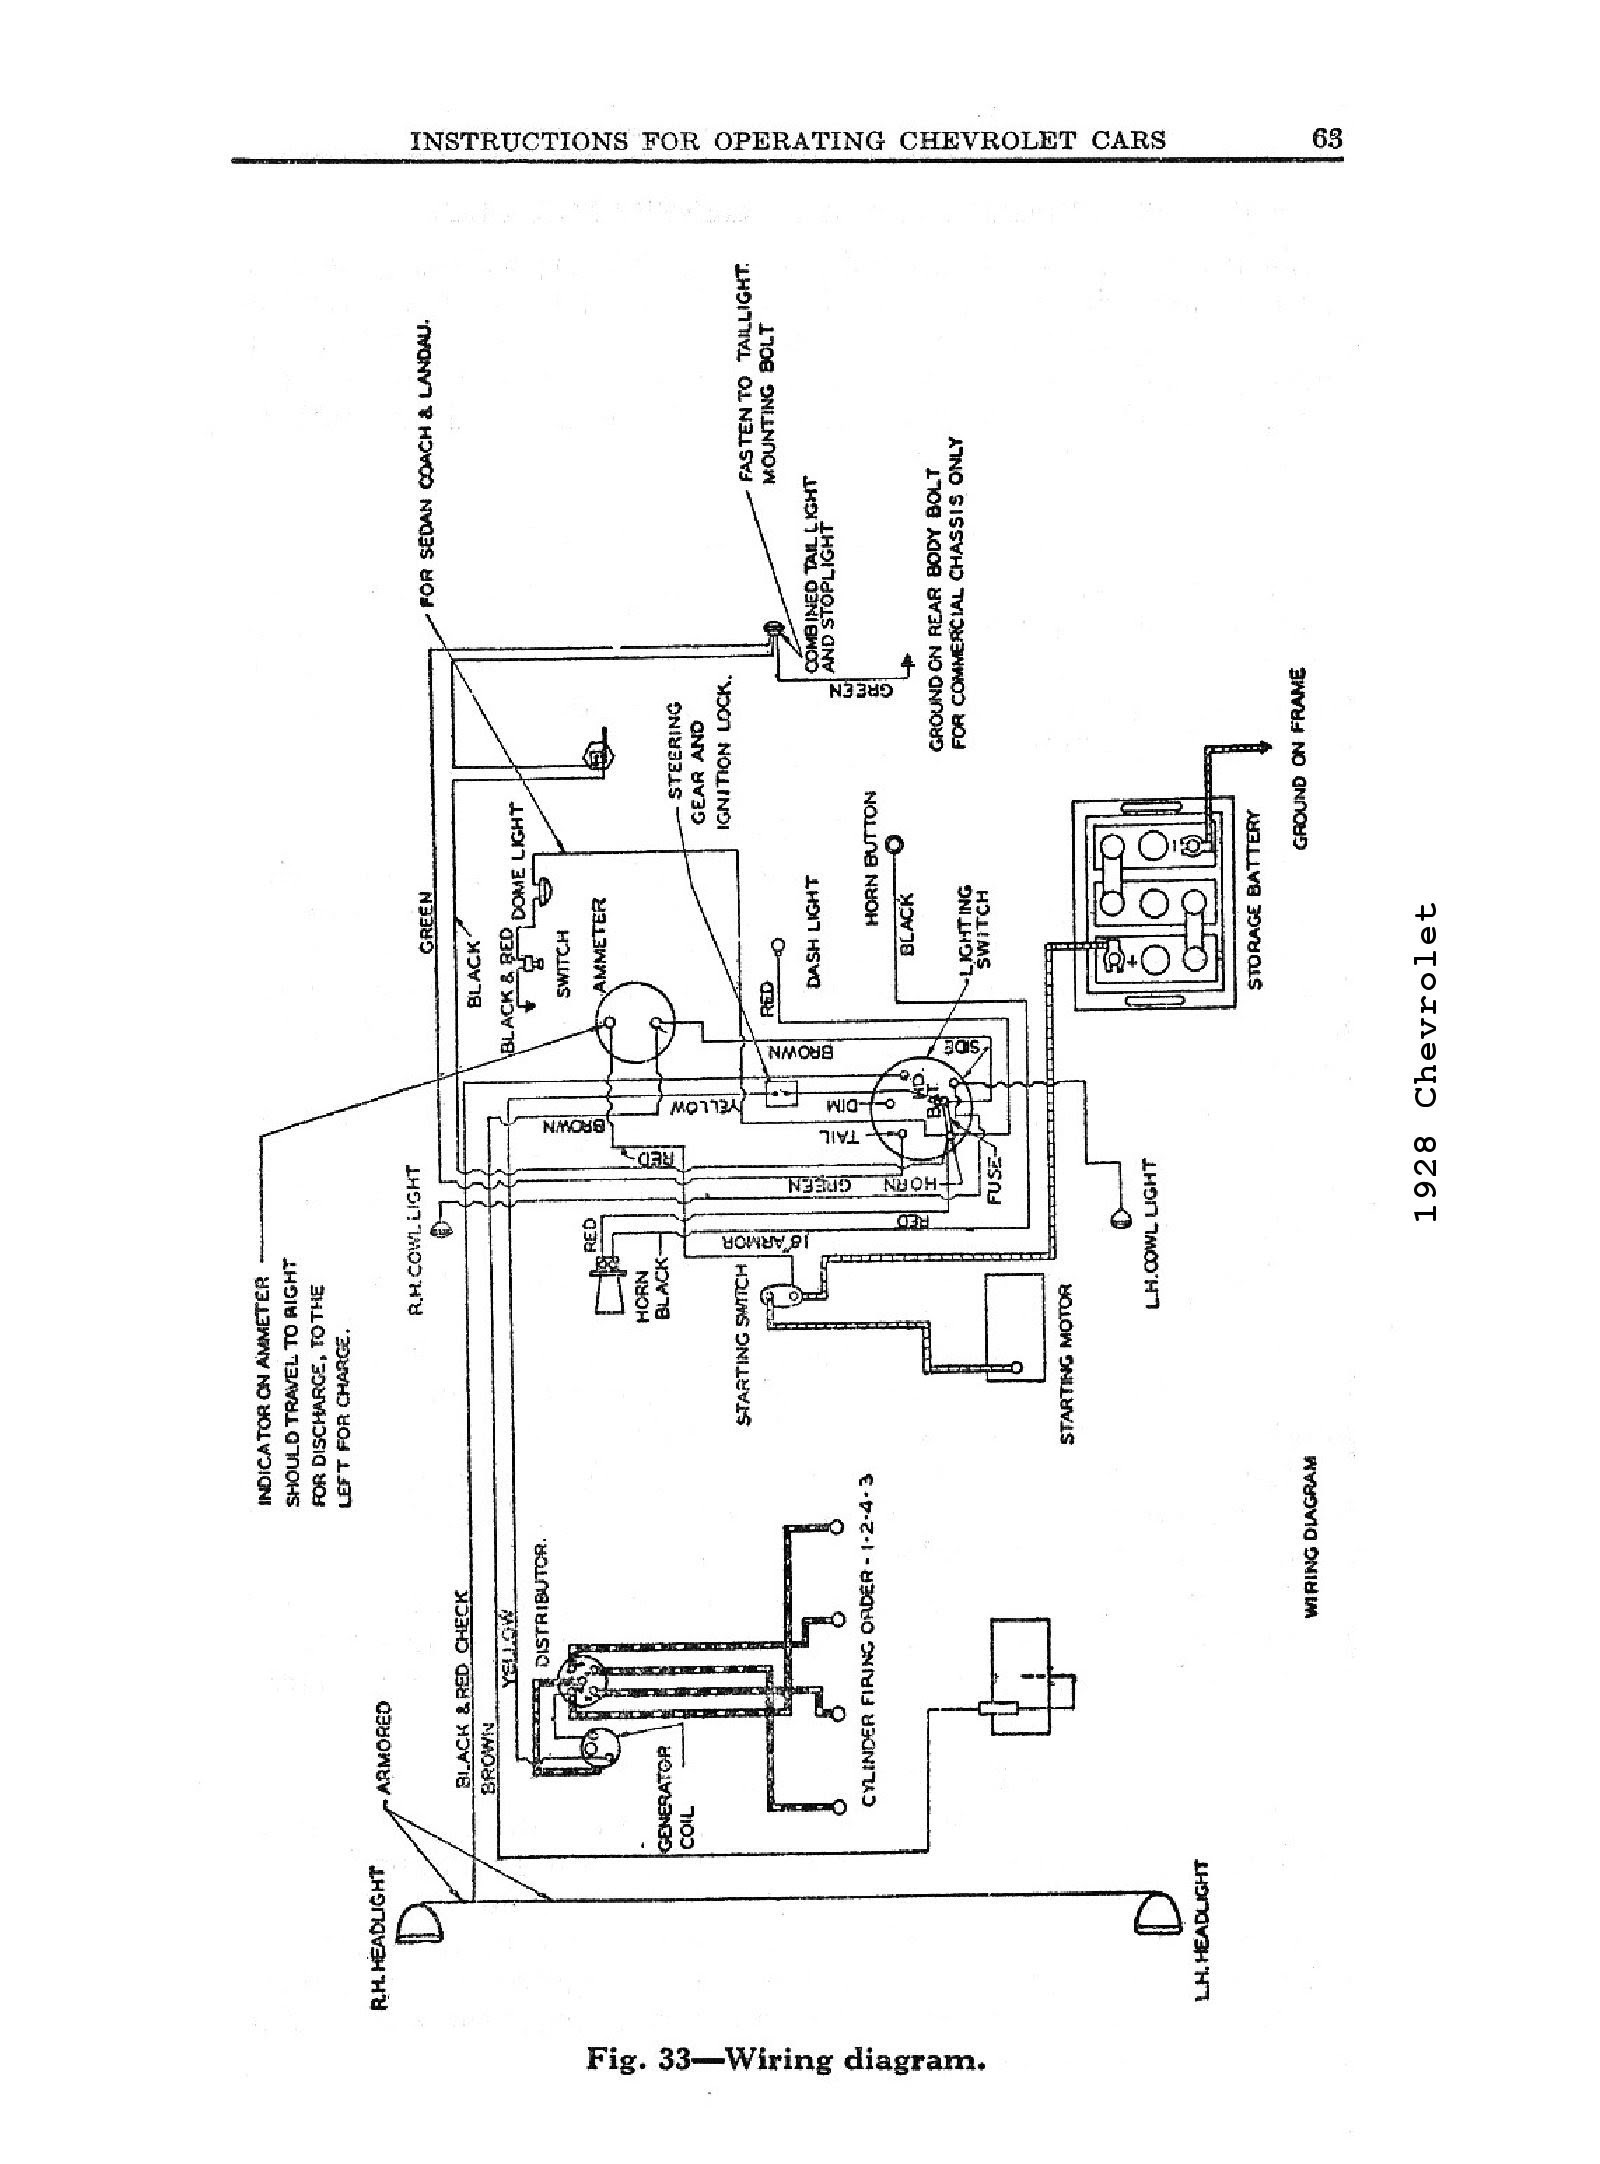 1962 Chevrolet Wiring Diagram